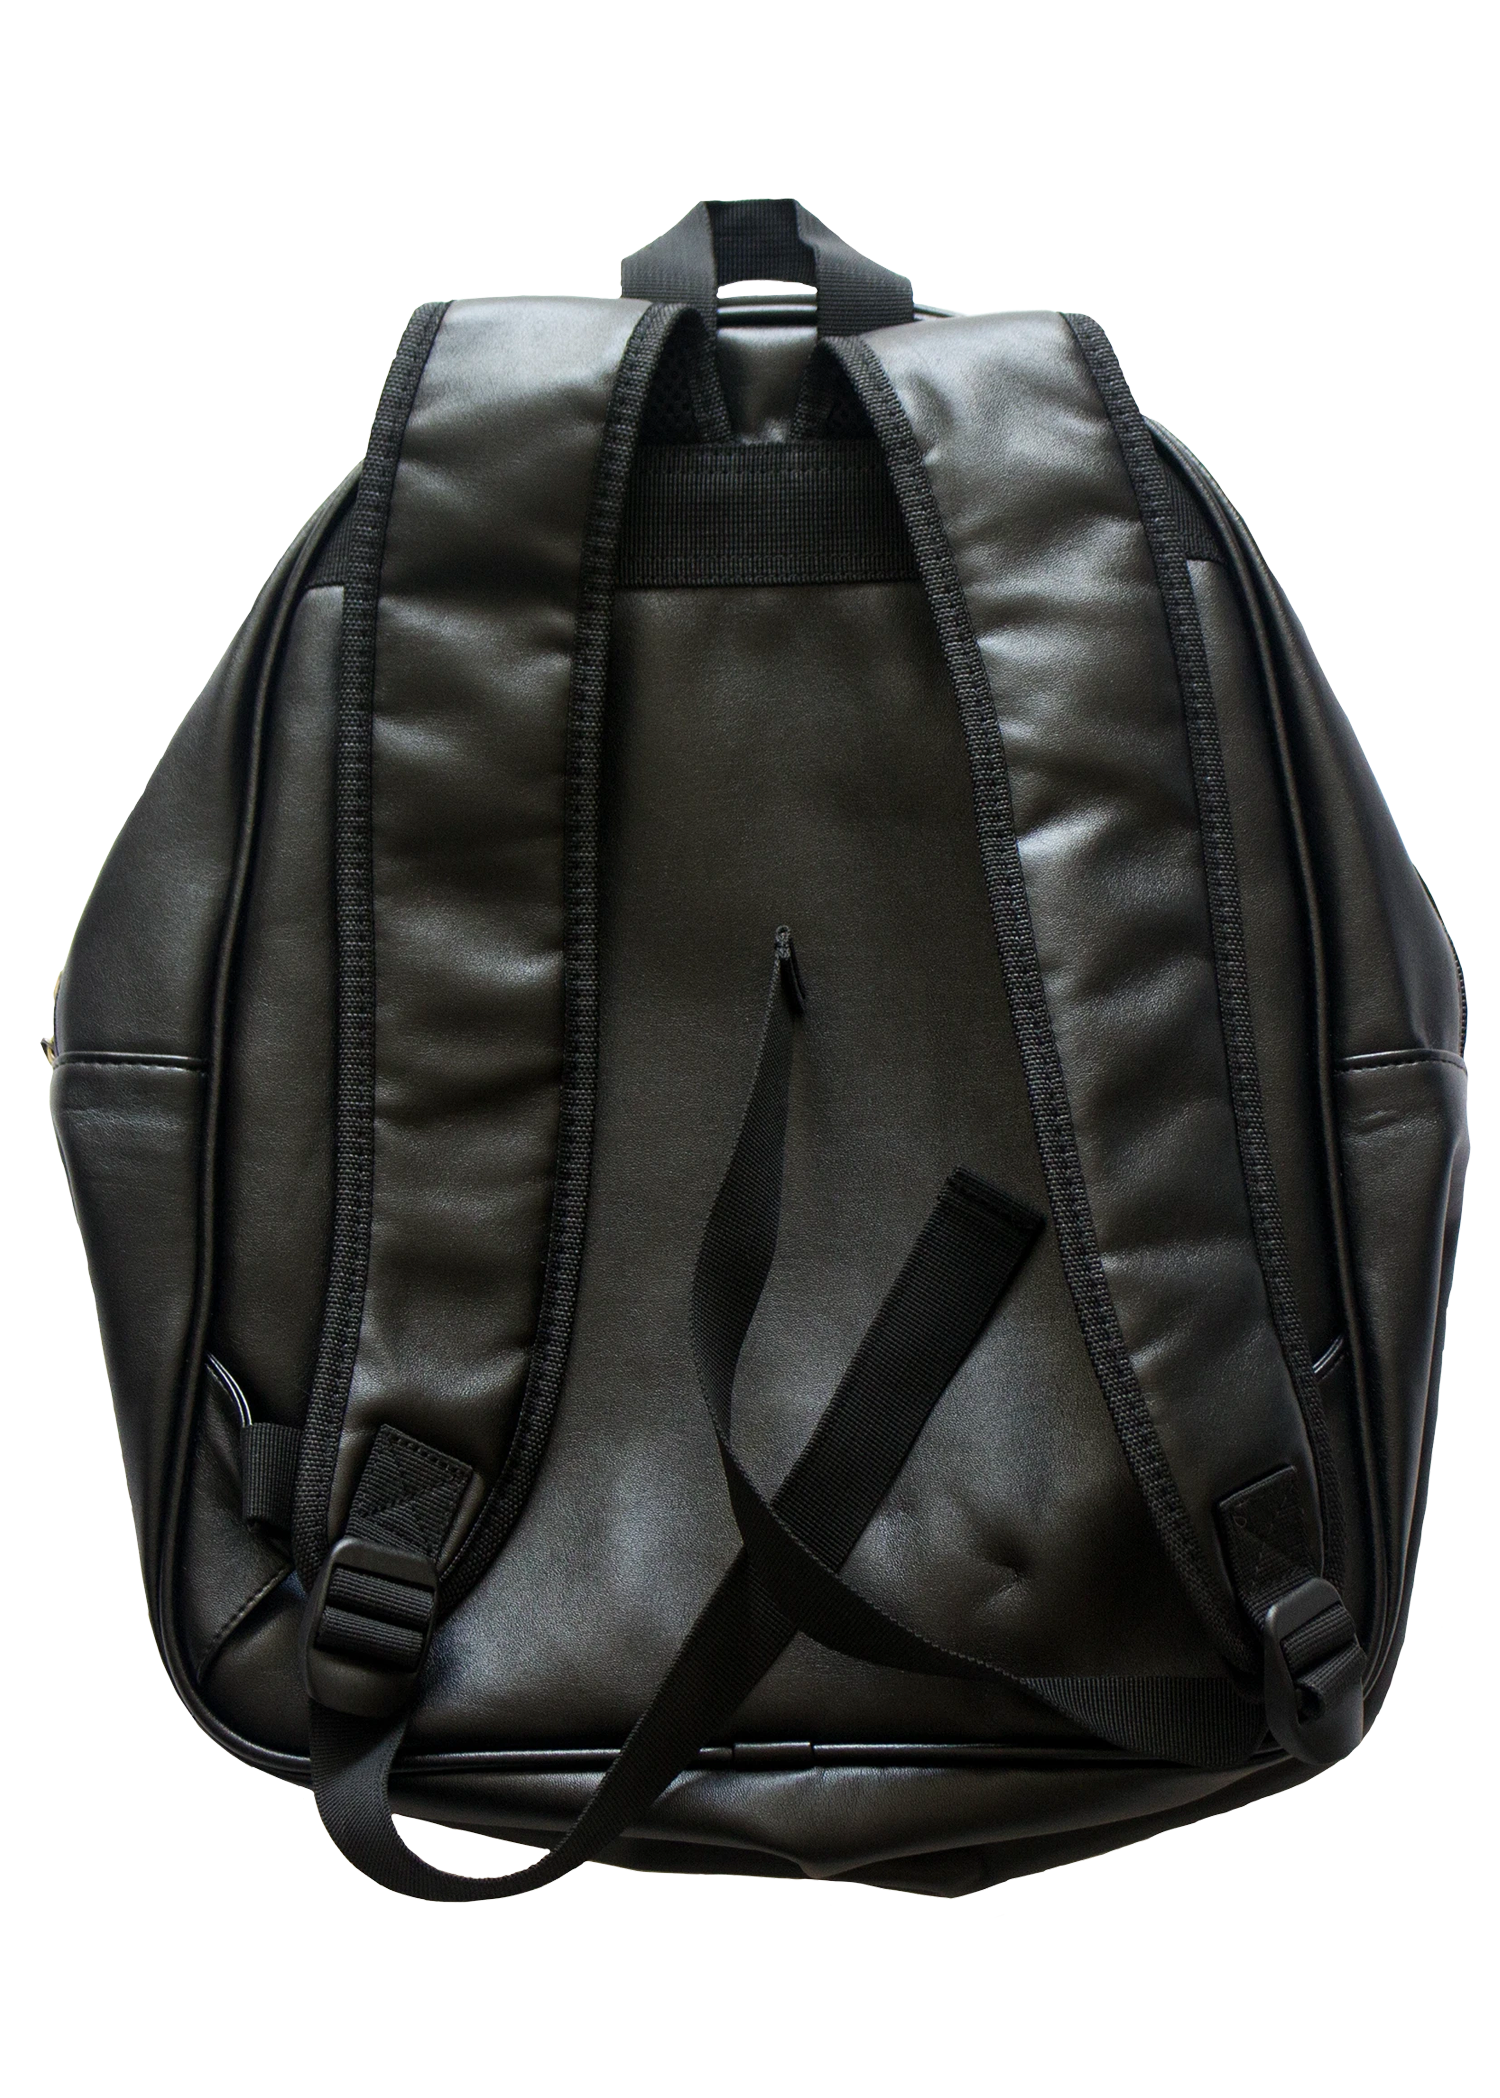 strata backpack